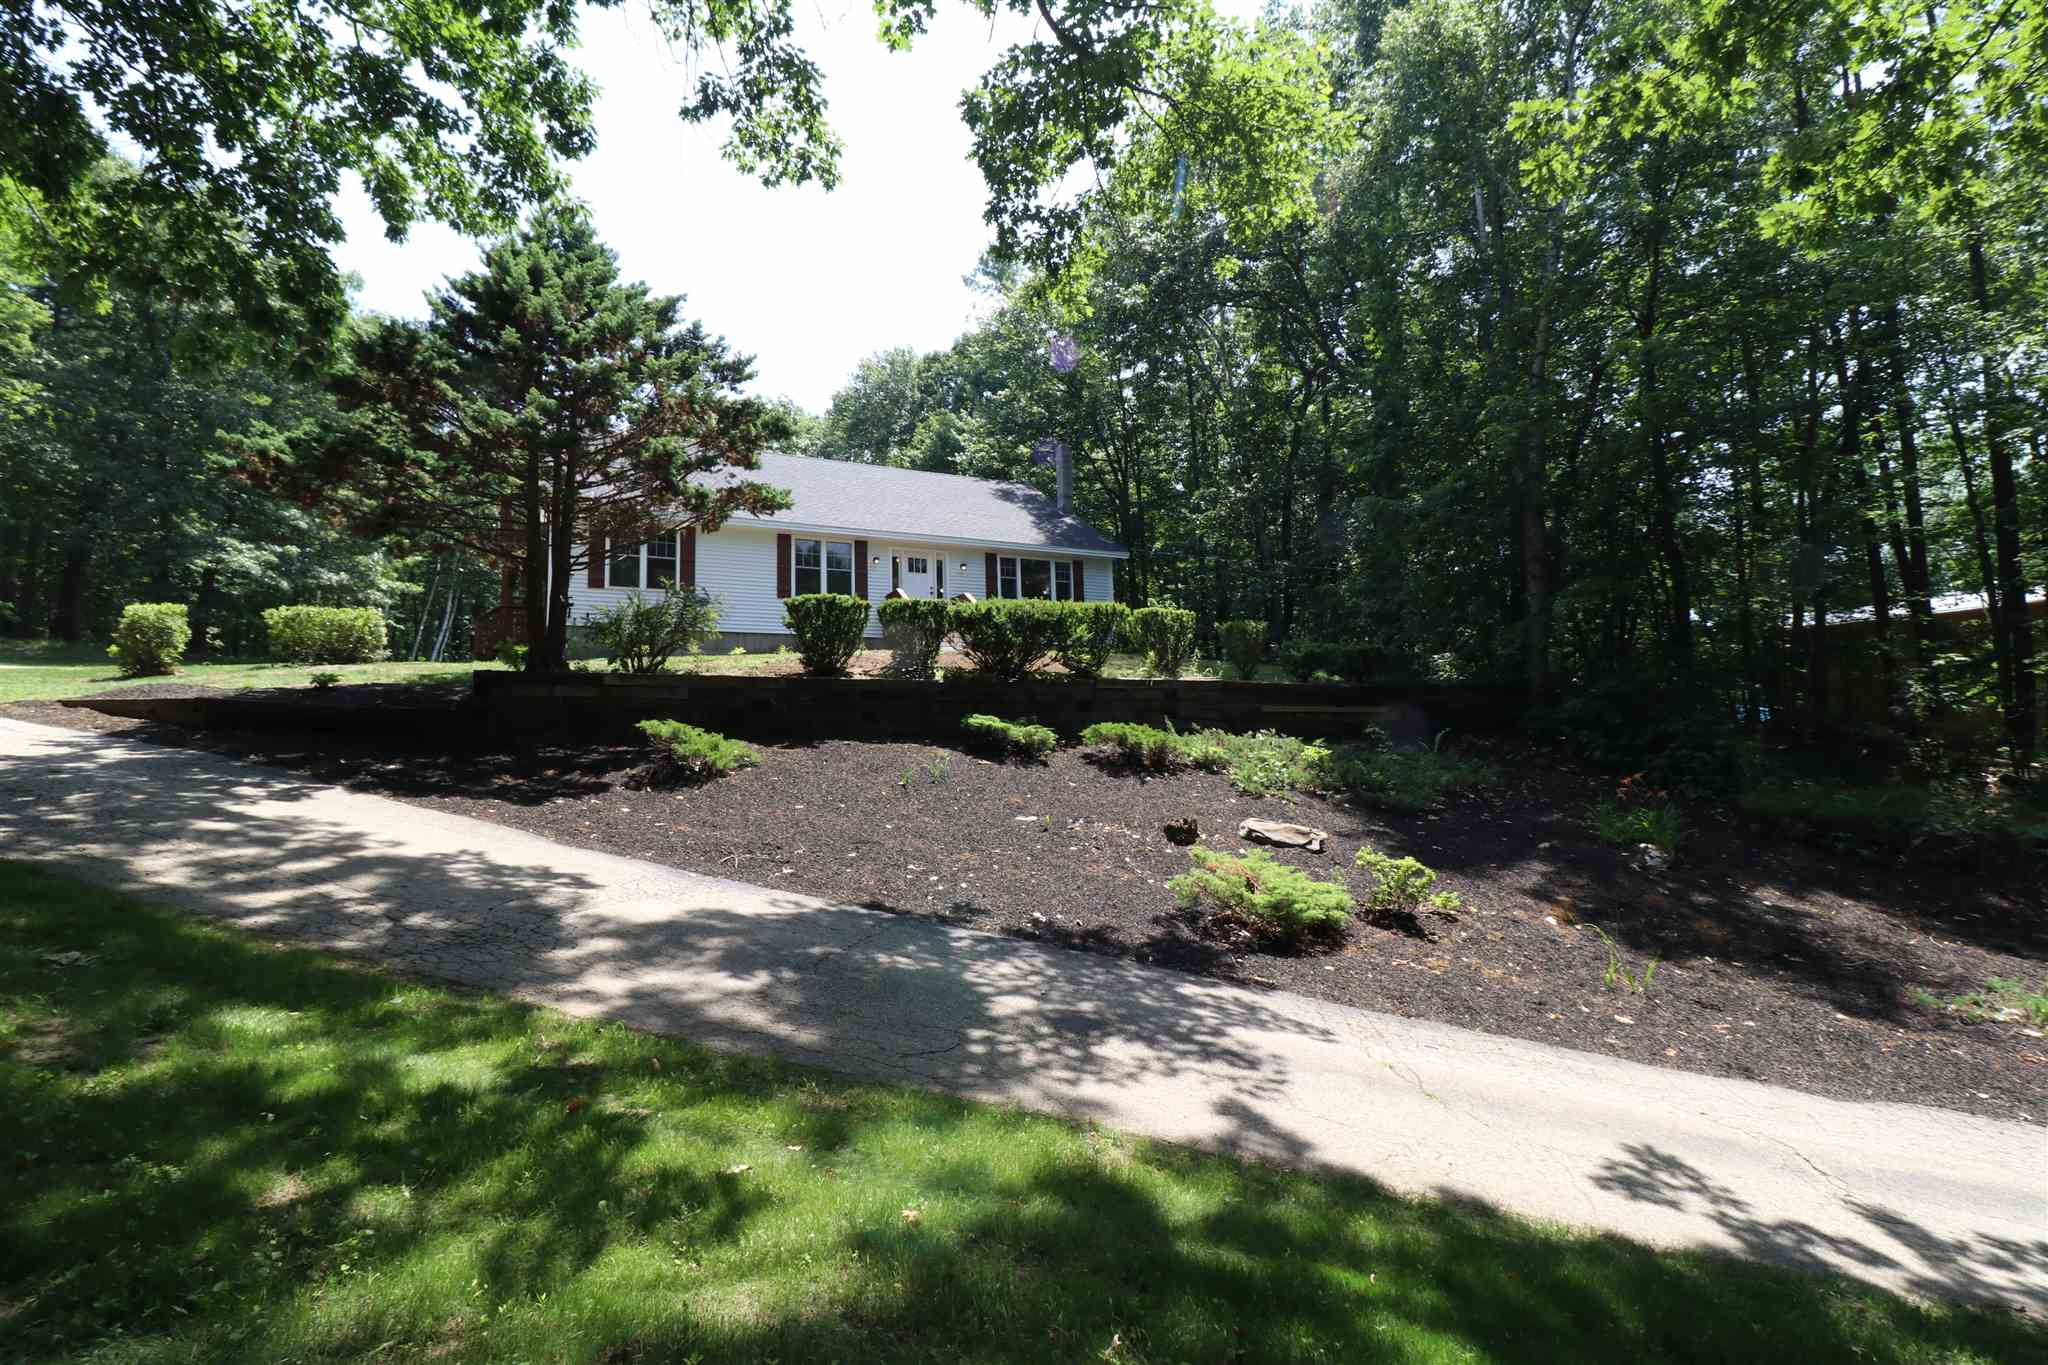 MLS 4815976: 84 Frost Road, Derry NH